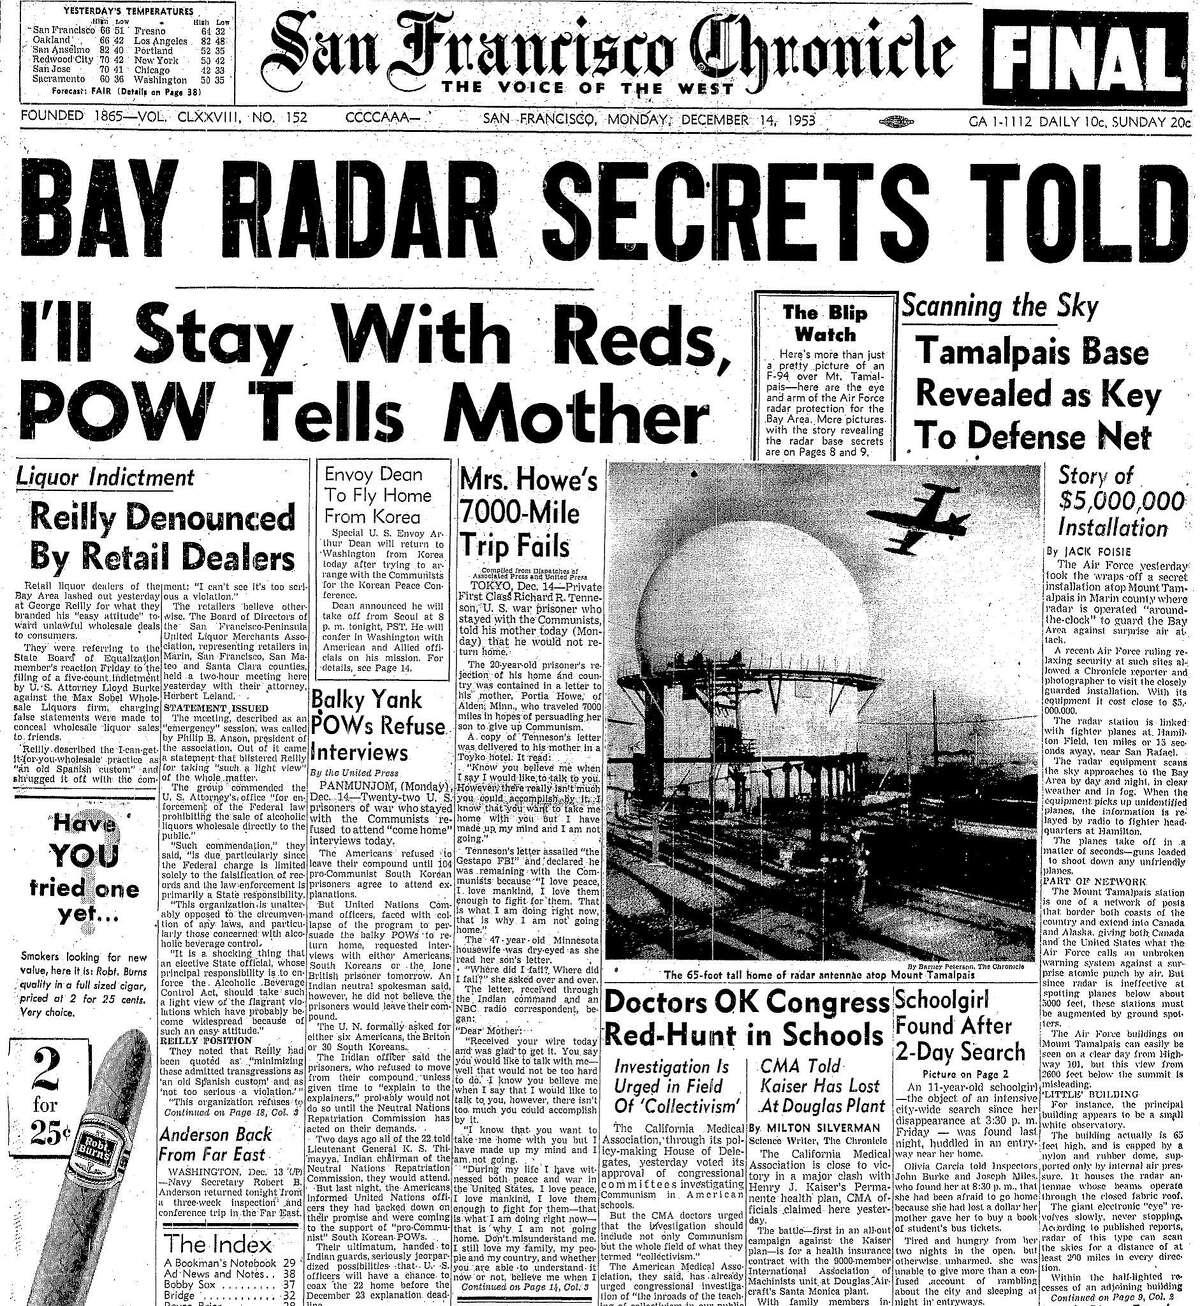 The December 14, 1953 Chronicle front dramatically reports on the